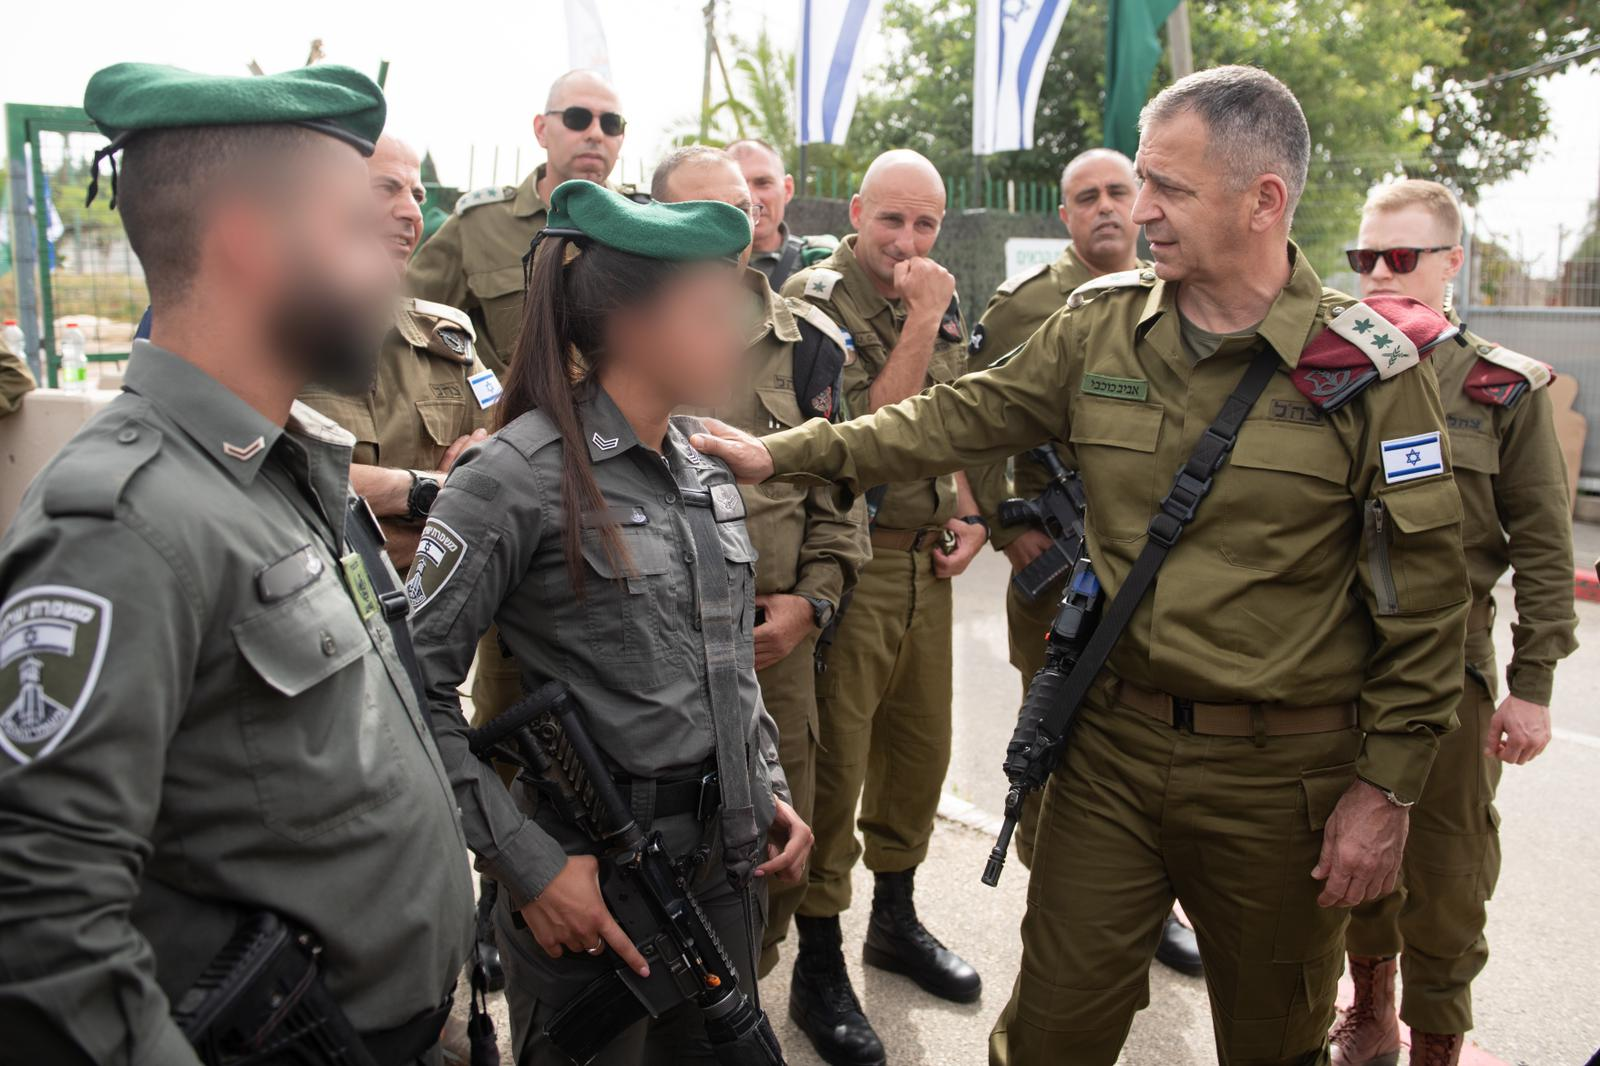 IDF sends 3 more battalions to West Bank in bid to curb violence   The  Times of Israel